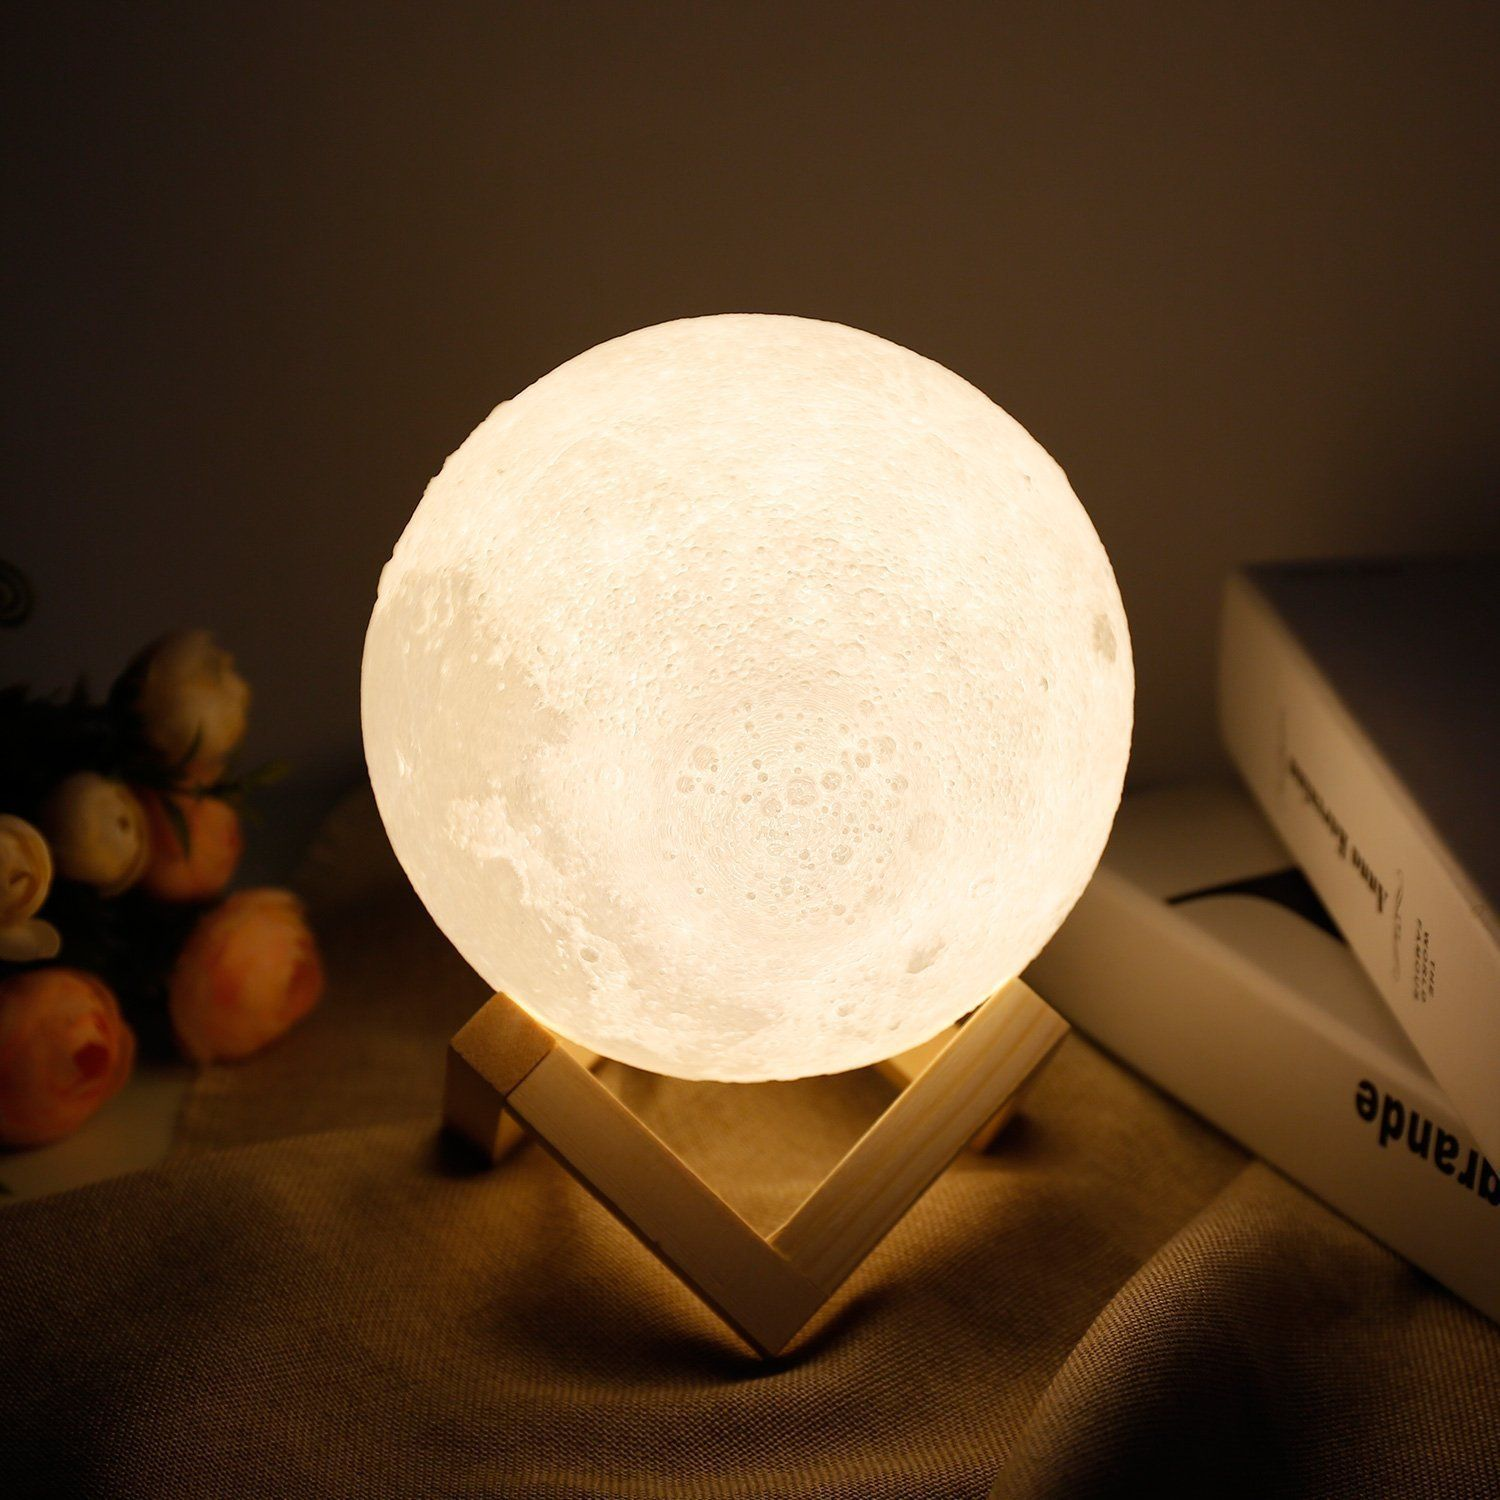 Moon Lamp Lampwin 5 9 Inch Usb Rechargeable Dimmable Led 3d Full Moon Light Lantern Touch Switch Warm Cool White C Lantern Lights Dimmable Led Decor Gifts